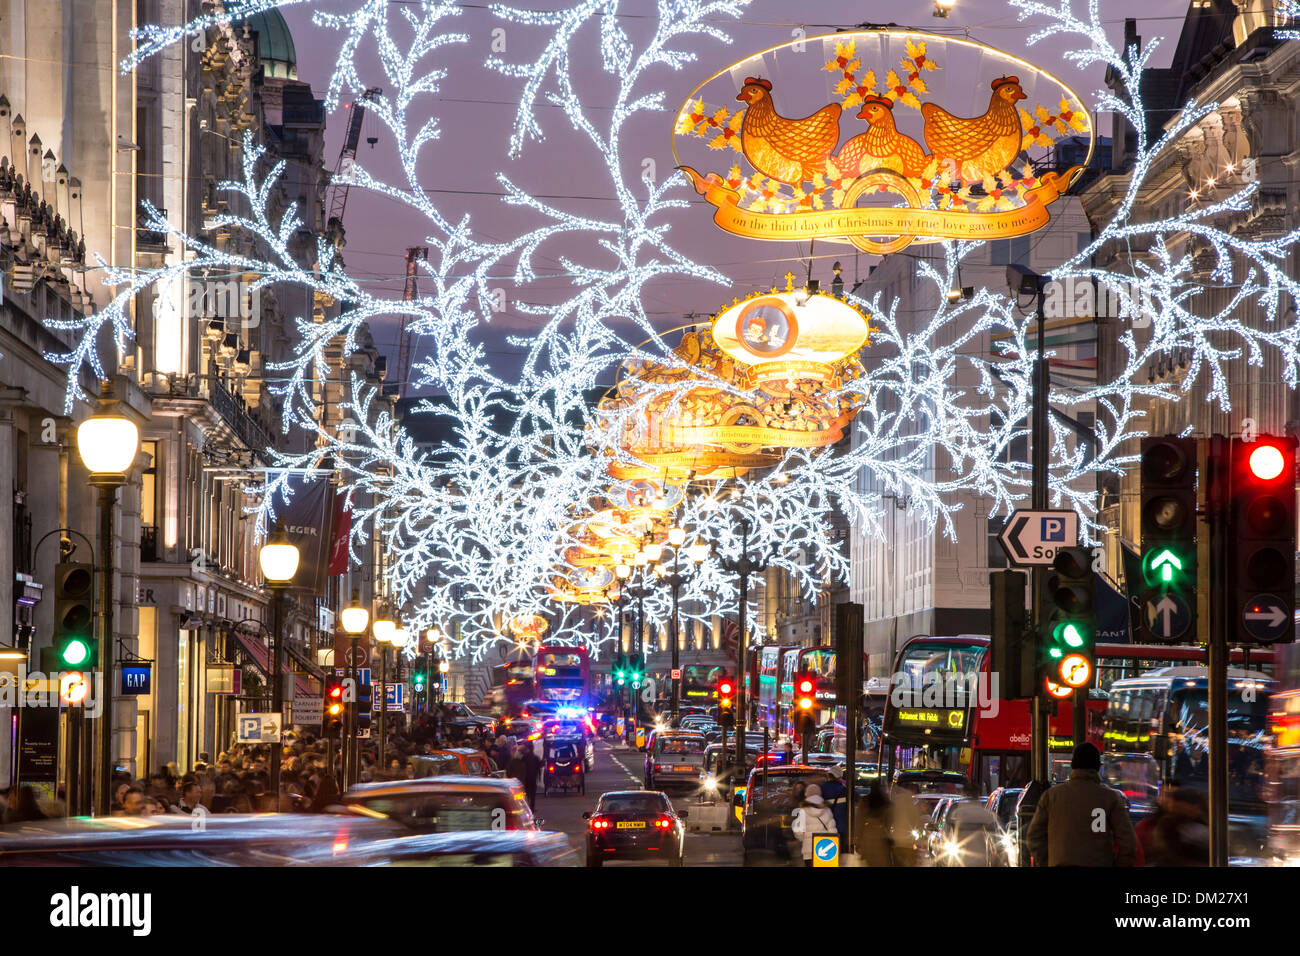 London At Christmas Time.Regent Street Christmas Time London Stock Photos Regent